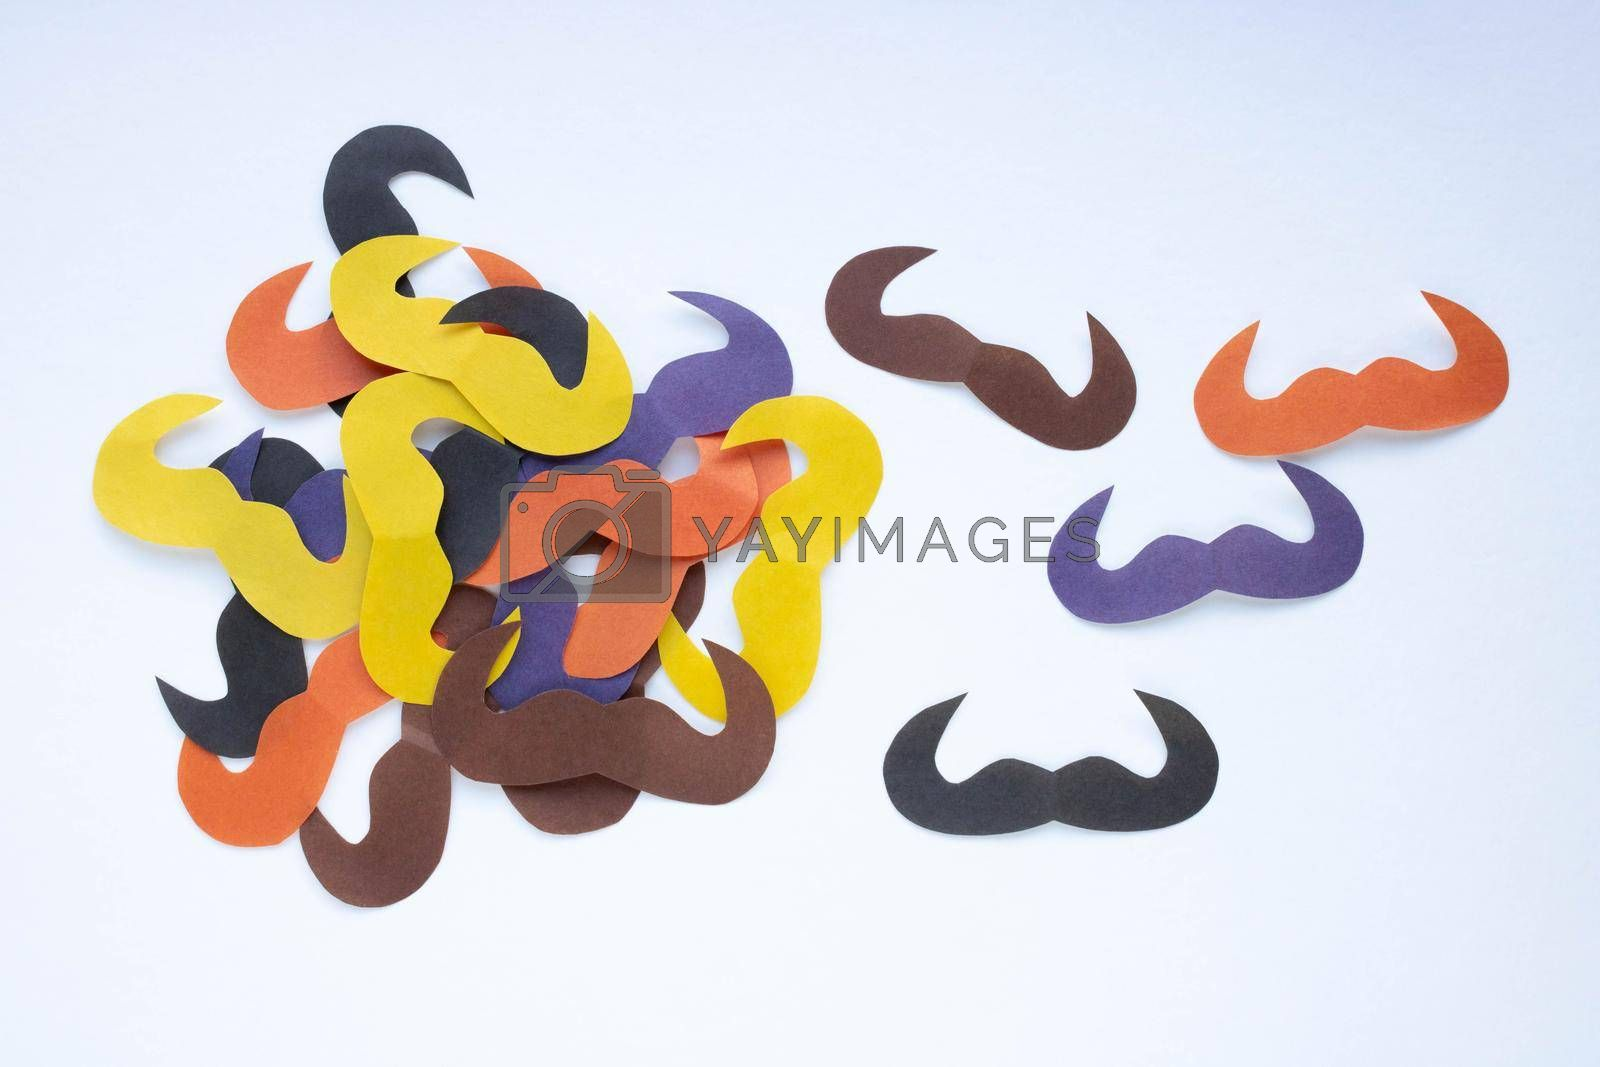 On a white background, there are many colorful paper mustaches. Father's Day, party decoration concept.